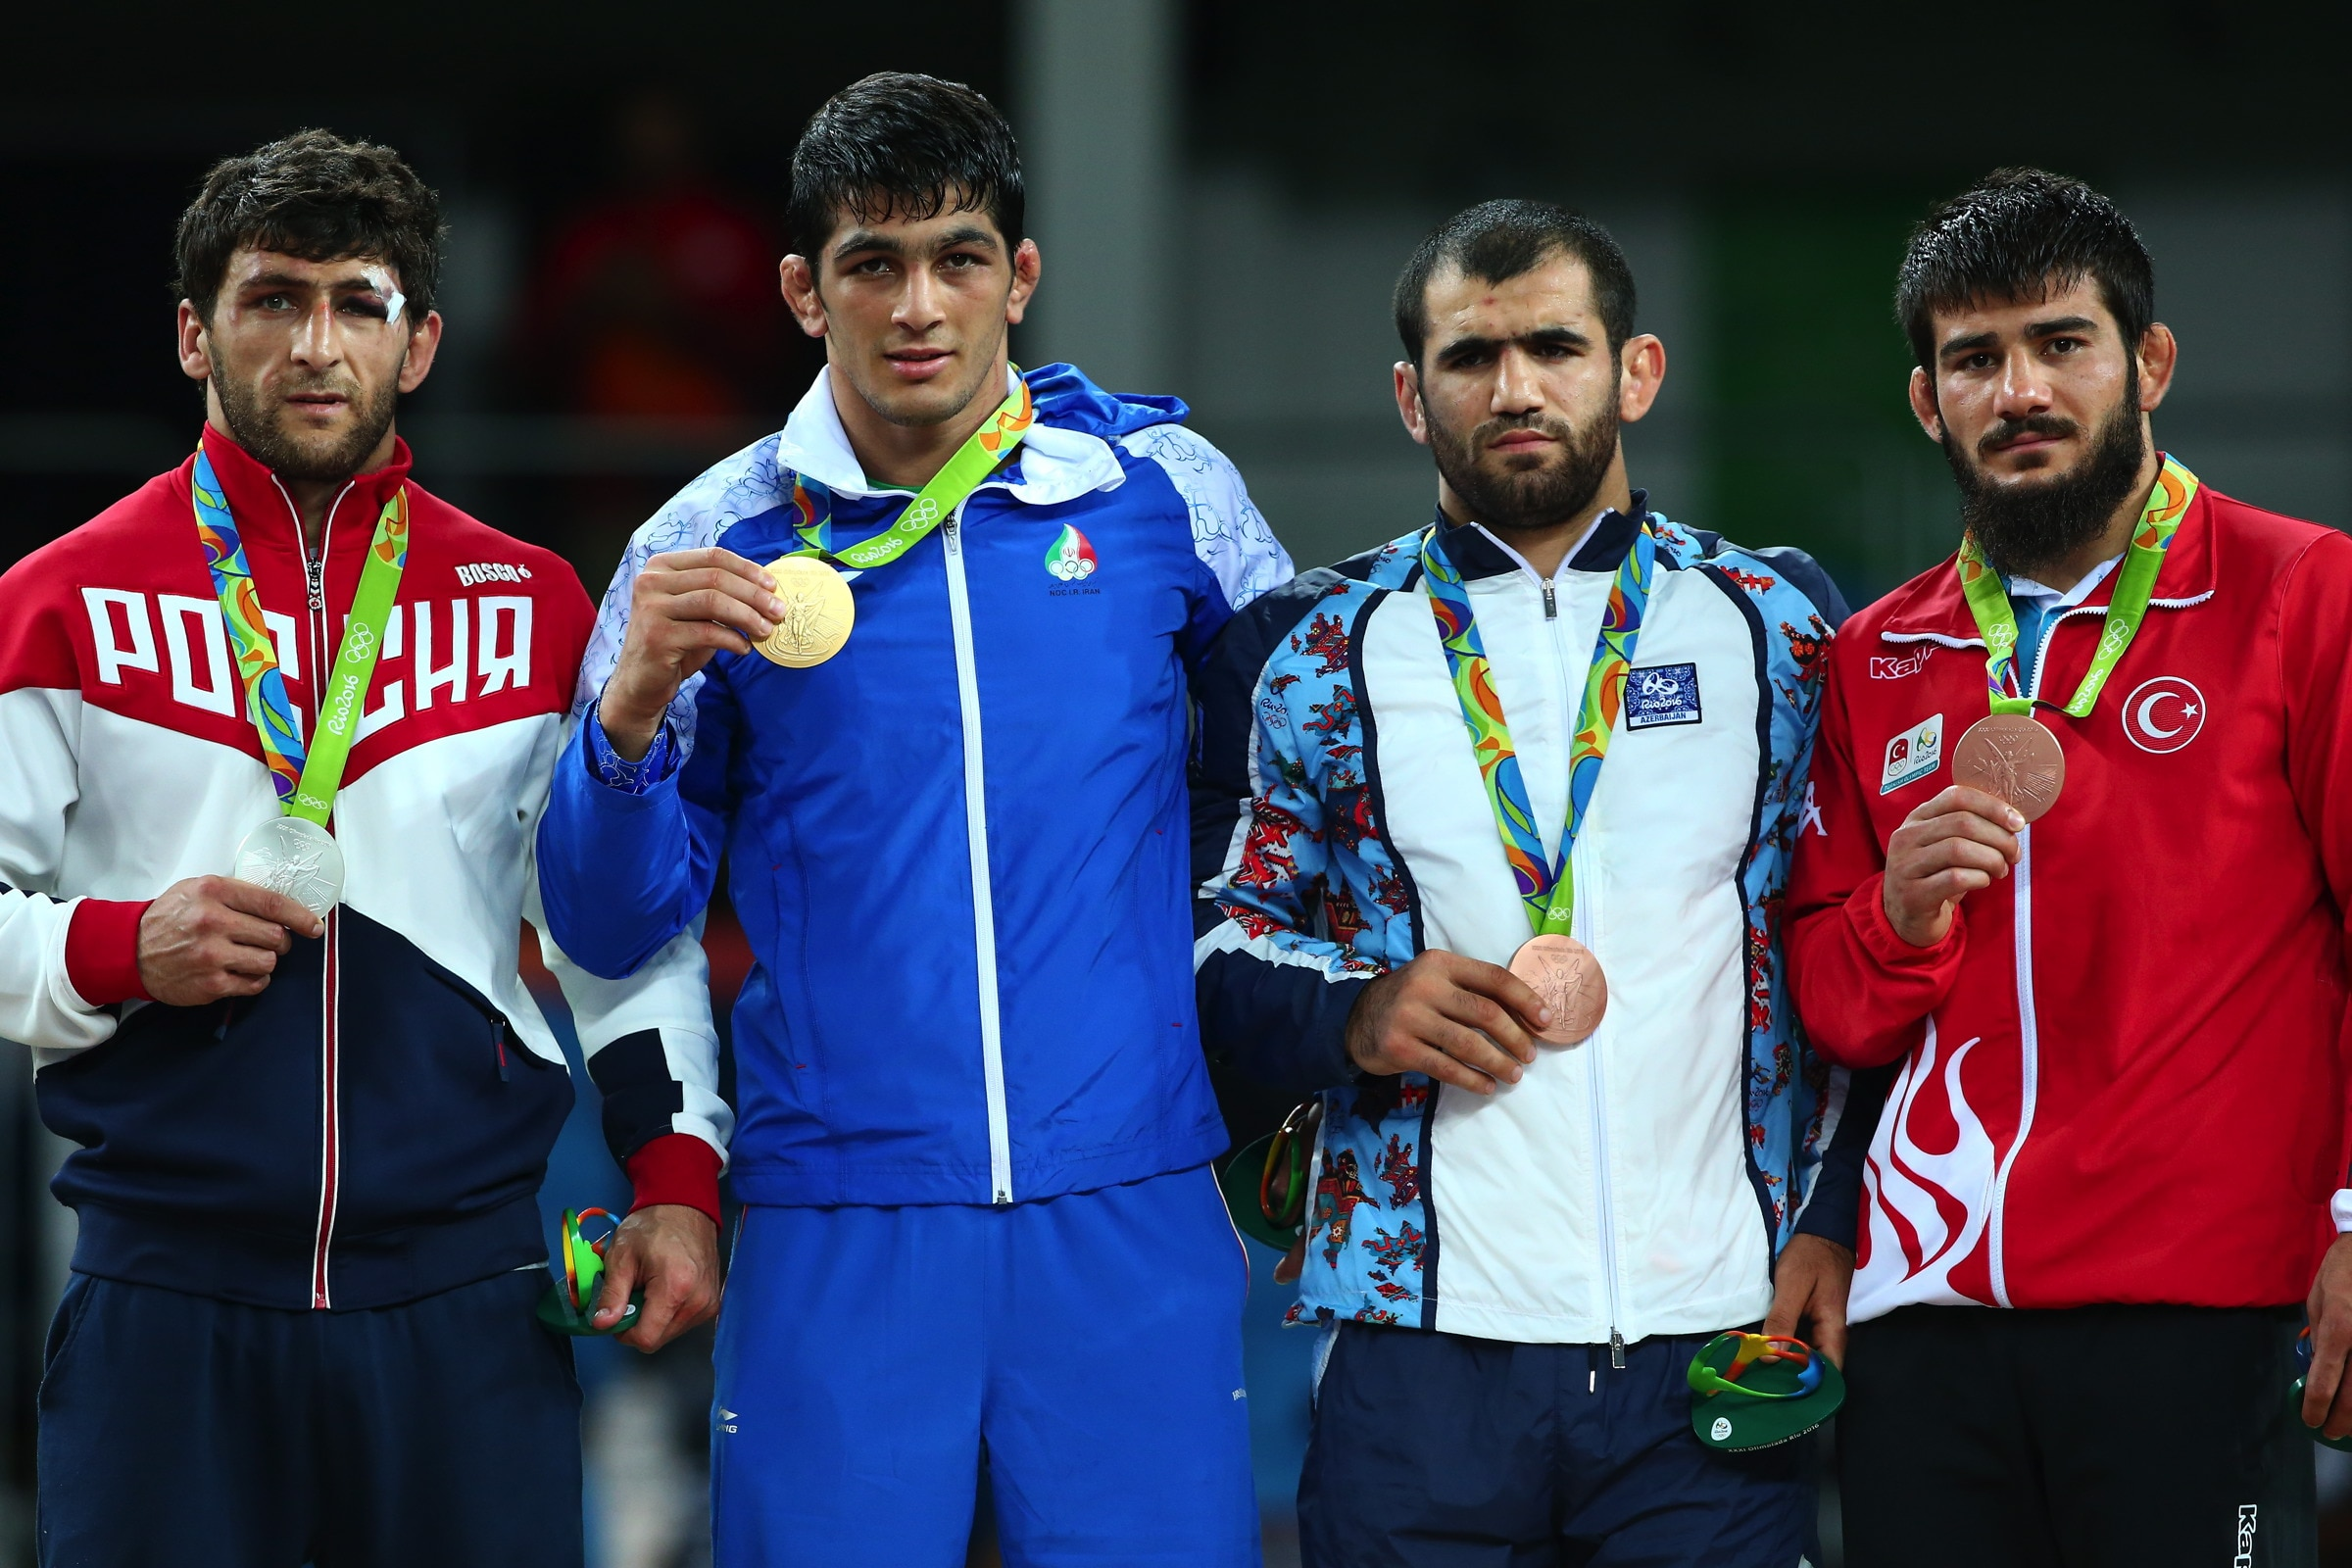 Wrestling Freestyle - 74kg Men